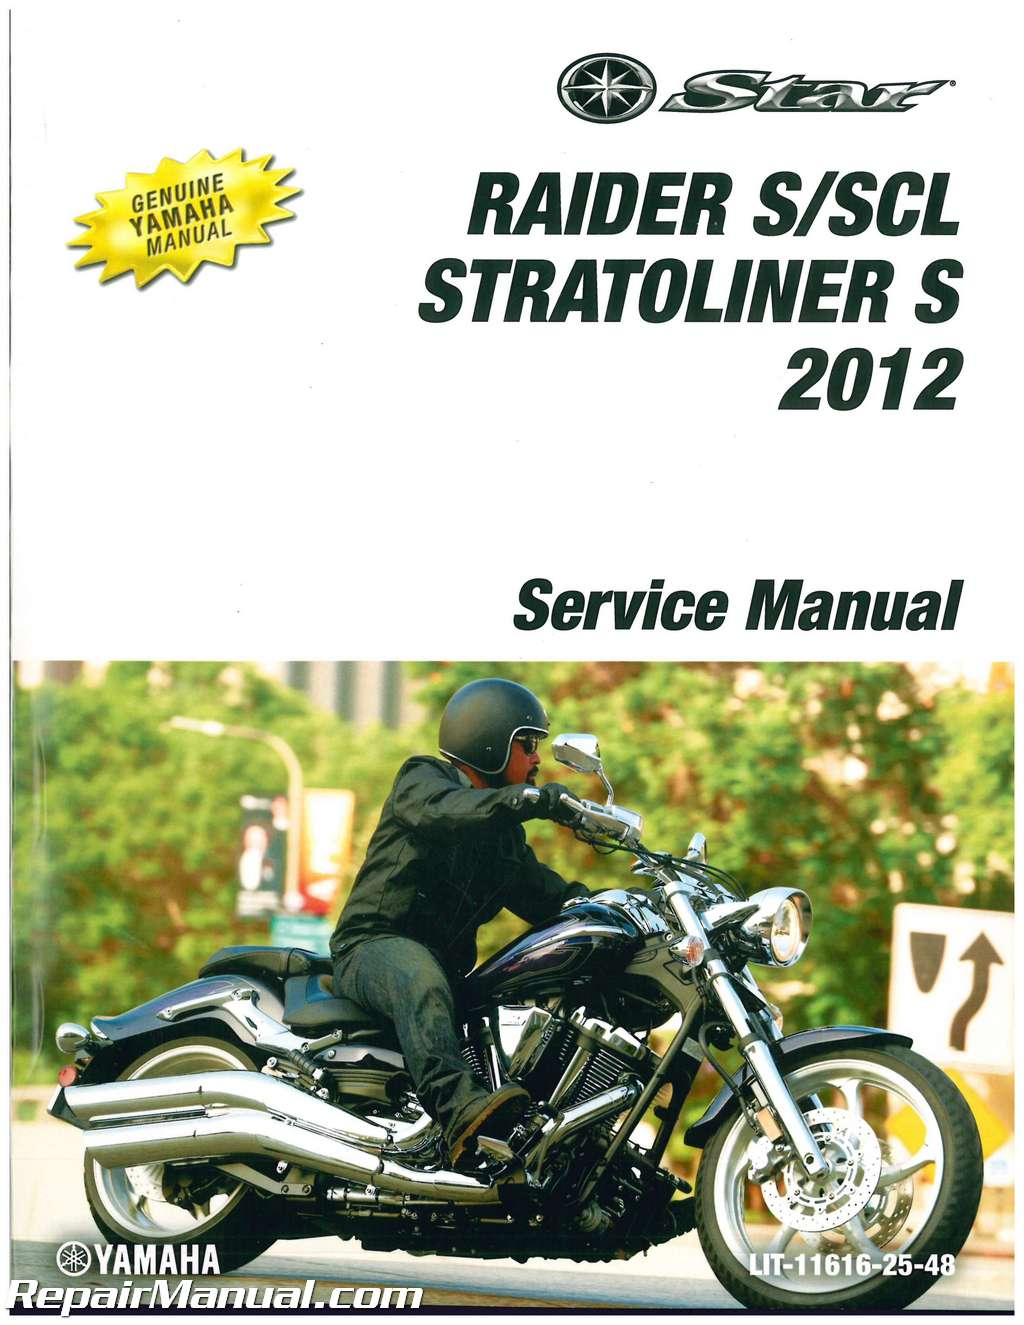 images for yamaha stratoliner roadliner manual motorcycle schematic images of images for yamaha stratoliner roadliner manual 2012 yamaha xv19 raider roadliner s stratoliner